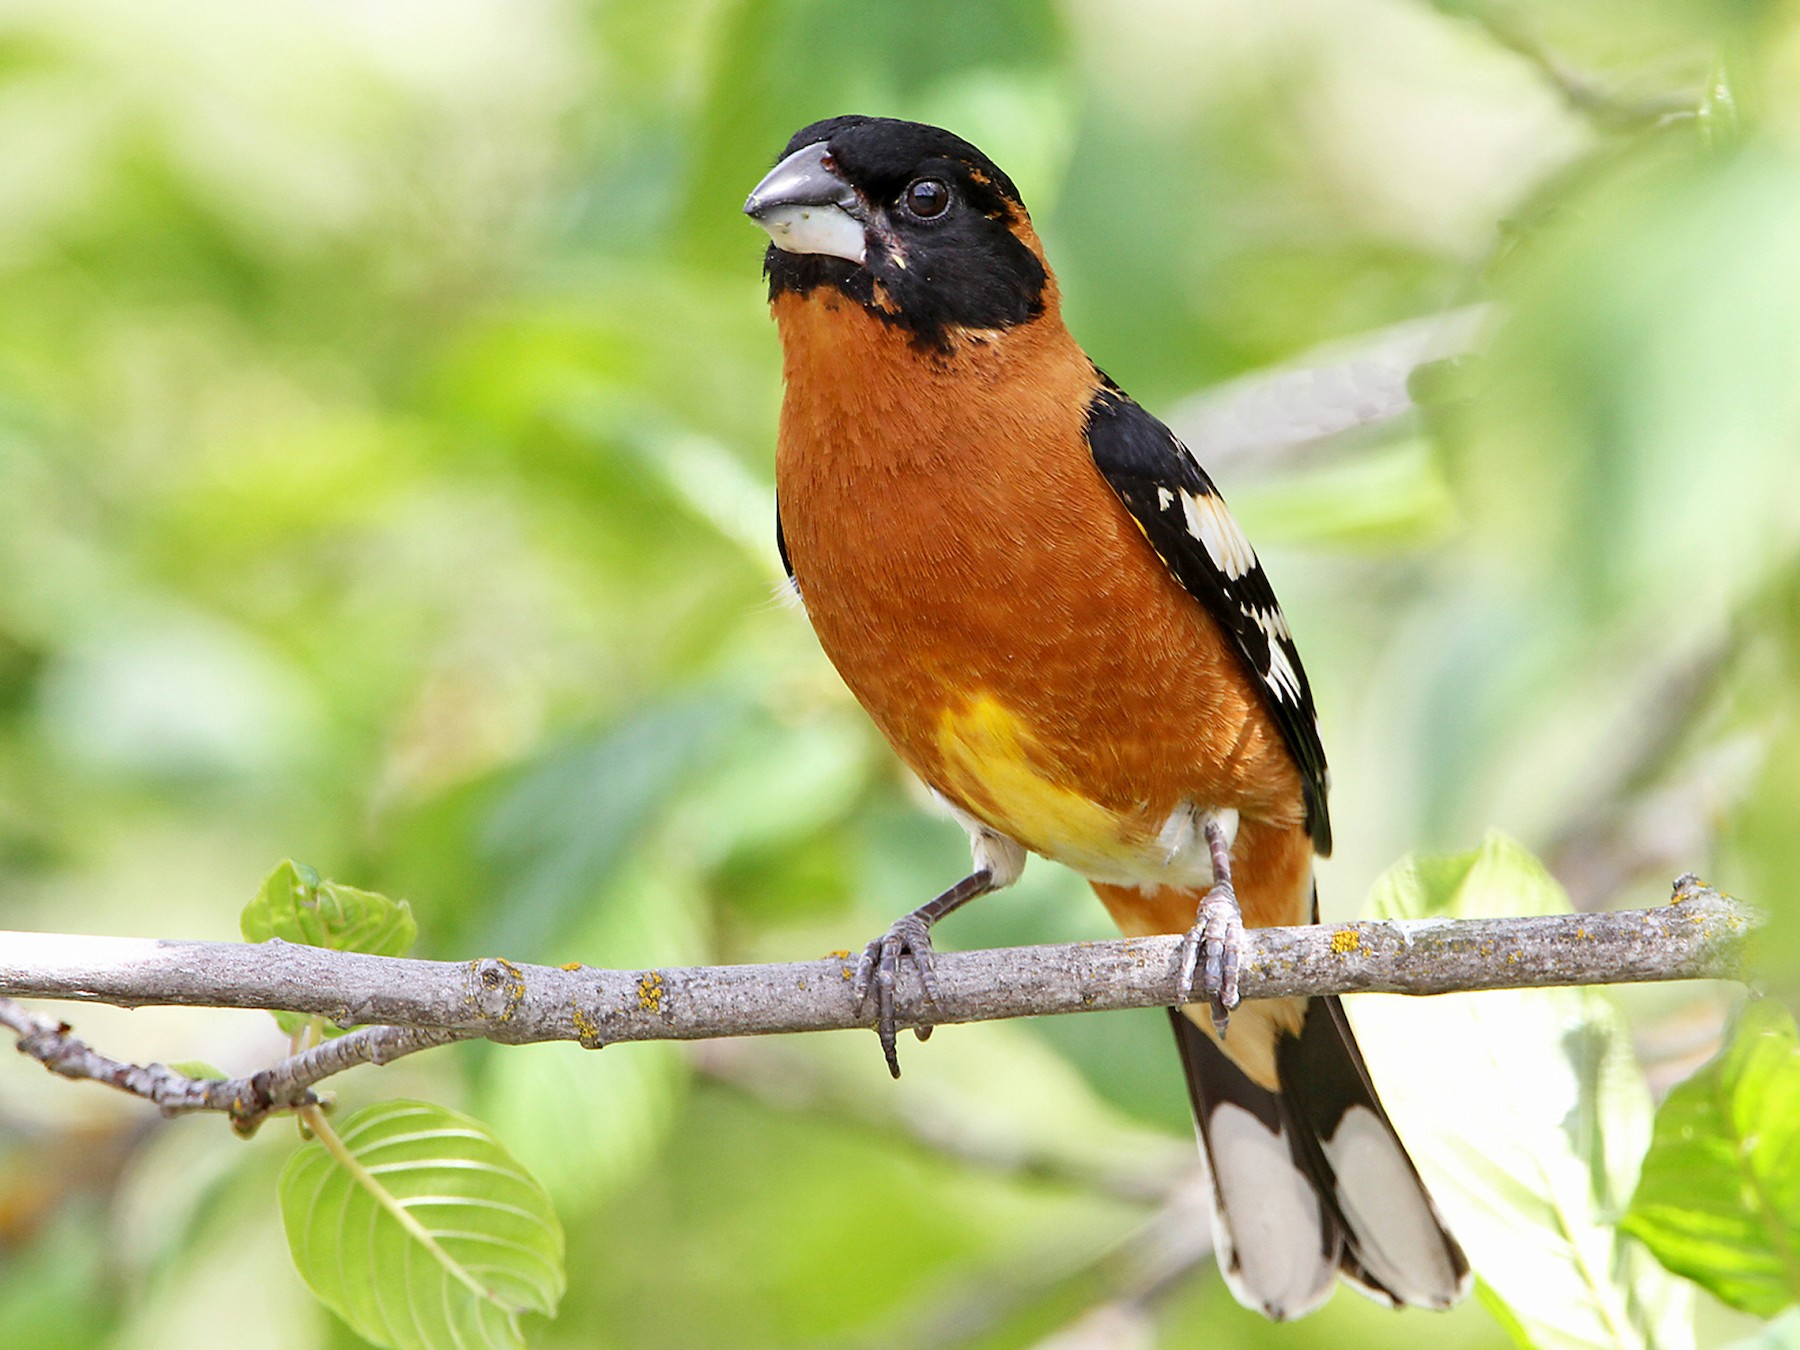 Black-headed Grosbeak - Marlene Cashen